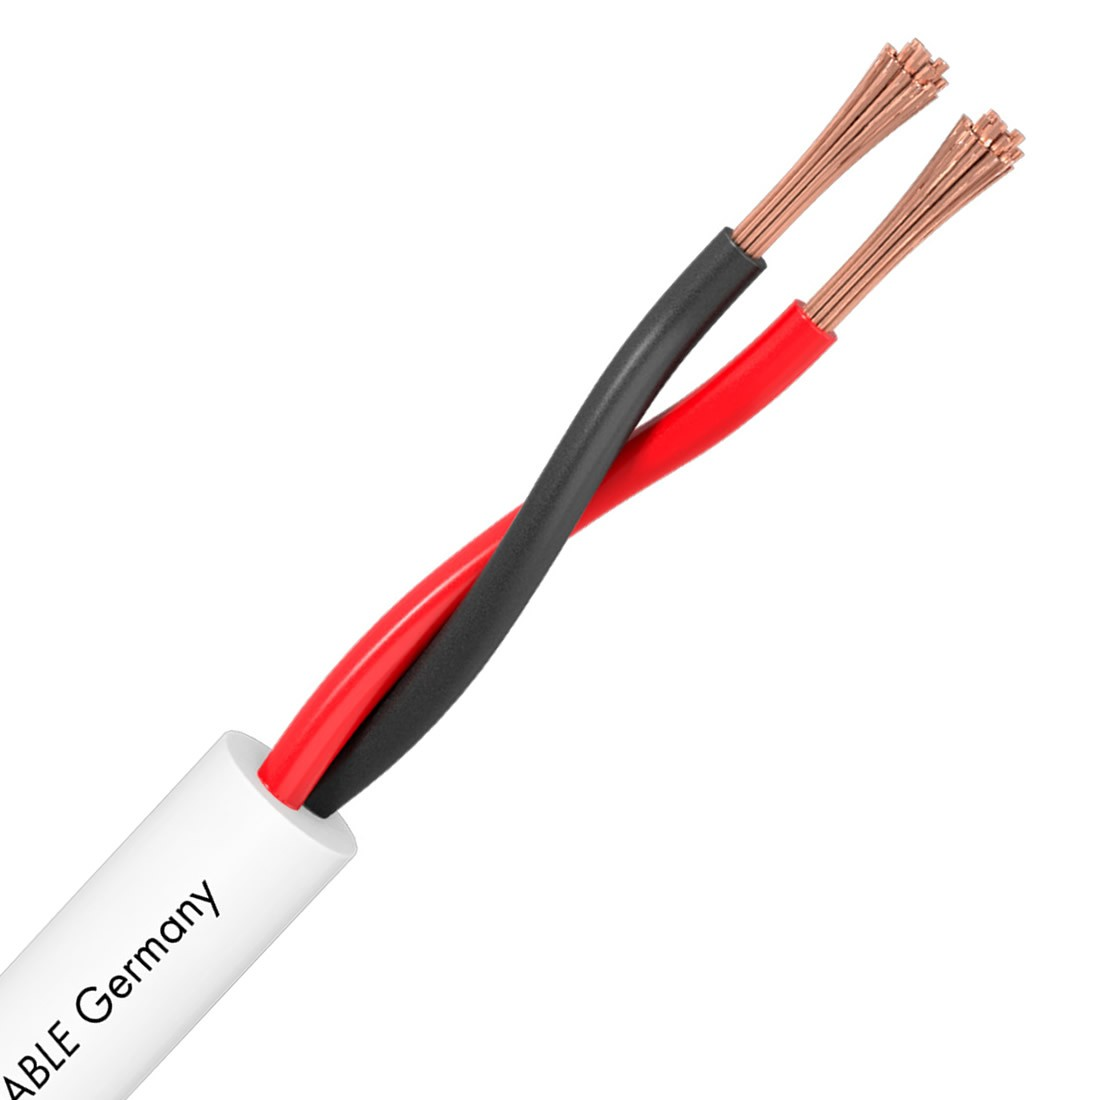 SOMMERCABLE MERIDIAN SP225 Speaker cable OFC 2x2.5mm² Ø 7.8mm